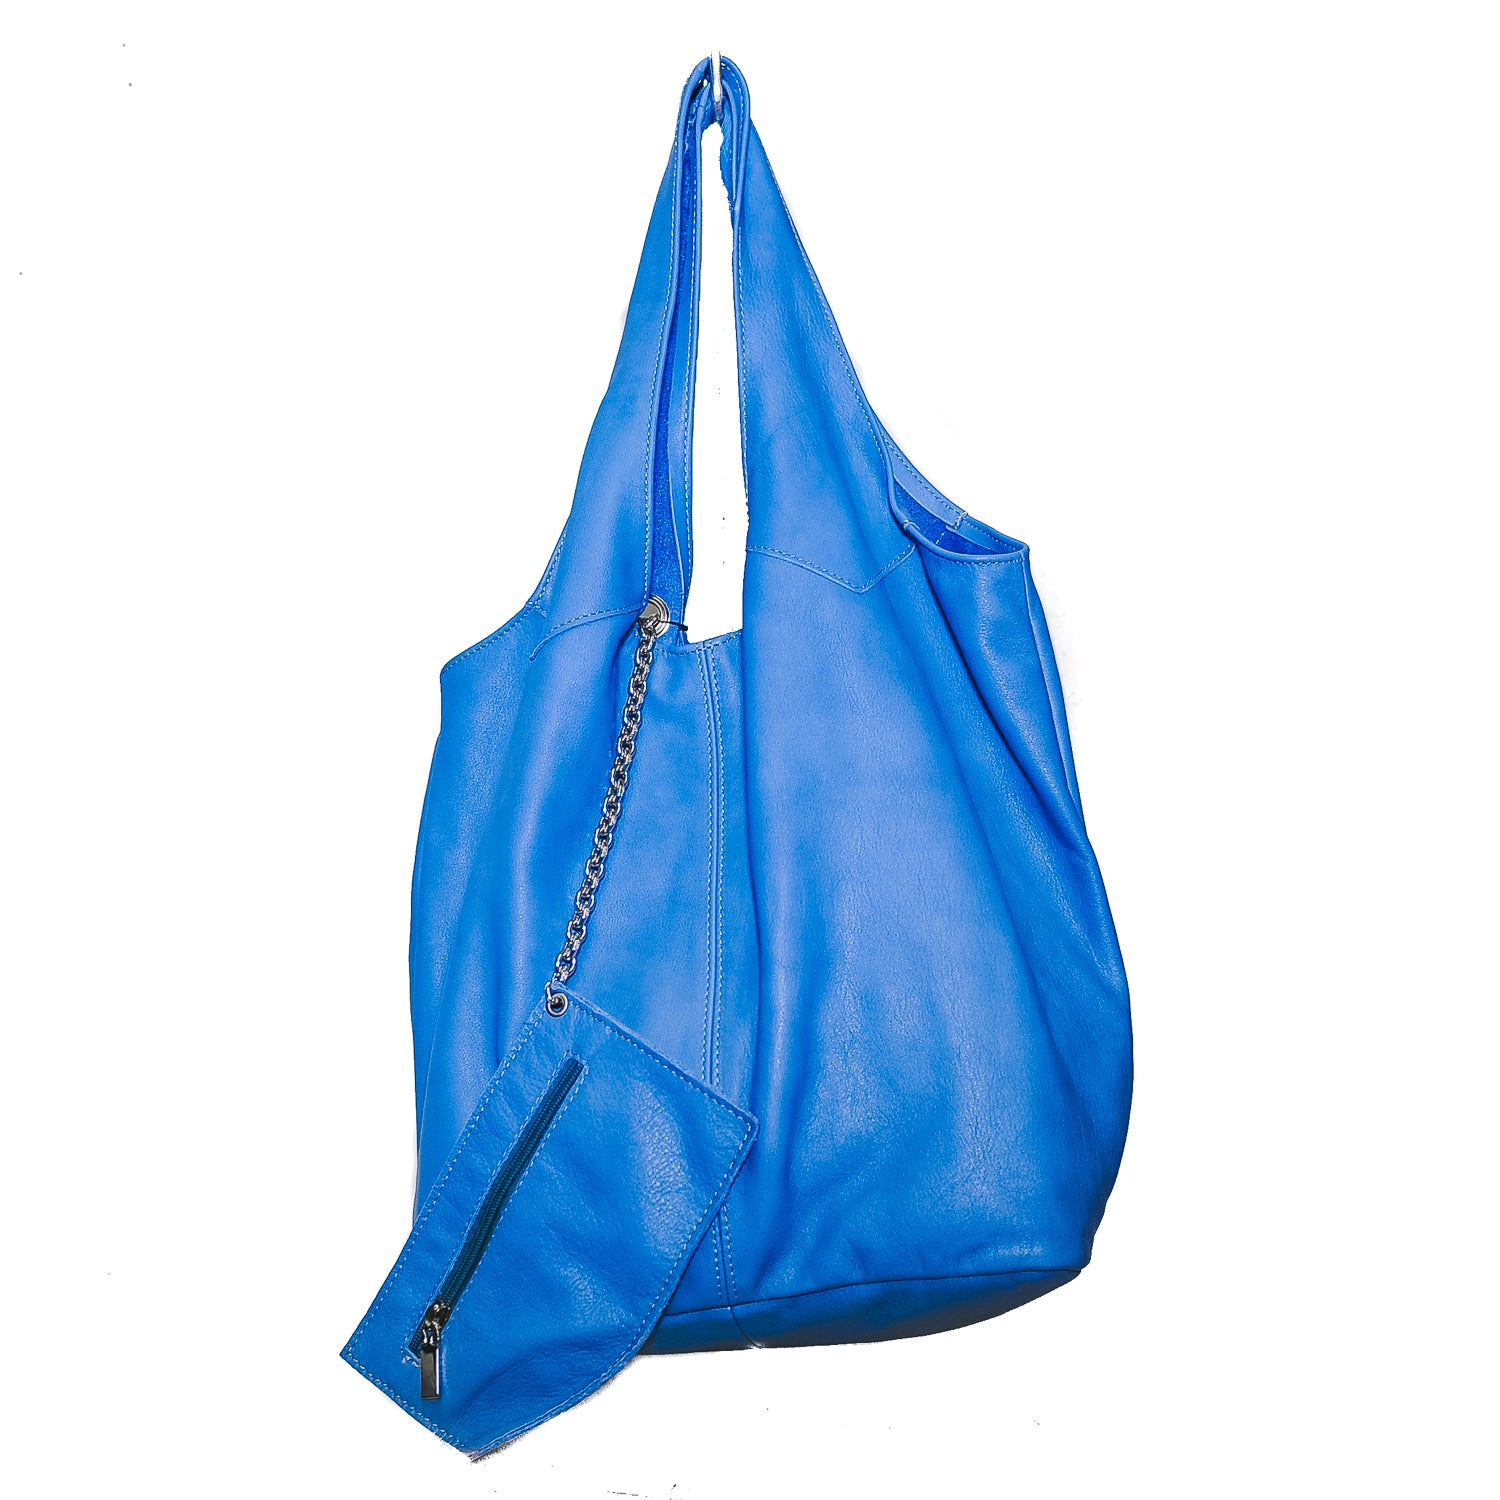 Amalfi Collection Leather Shopping Bag with leather lining inside - AmalfiBazar